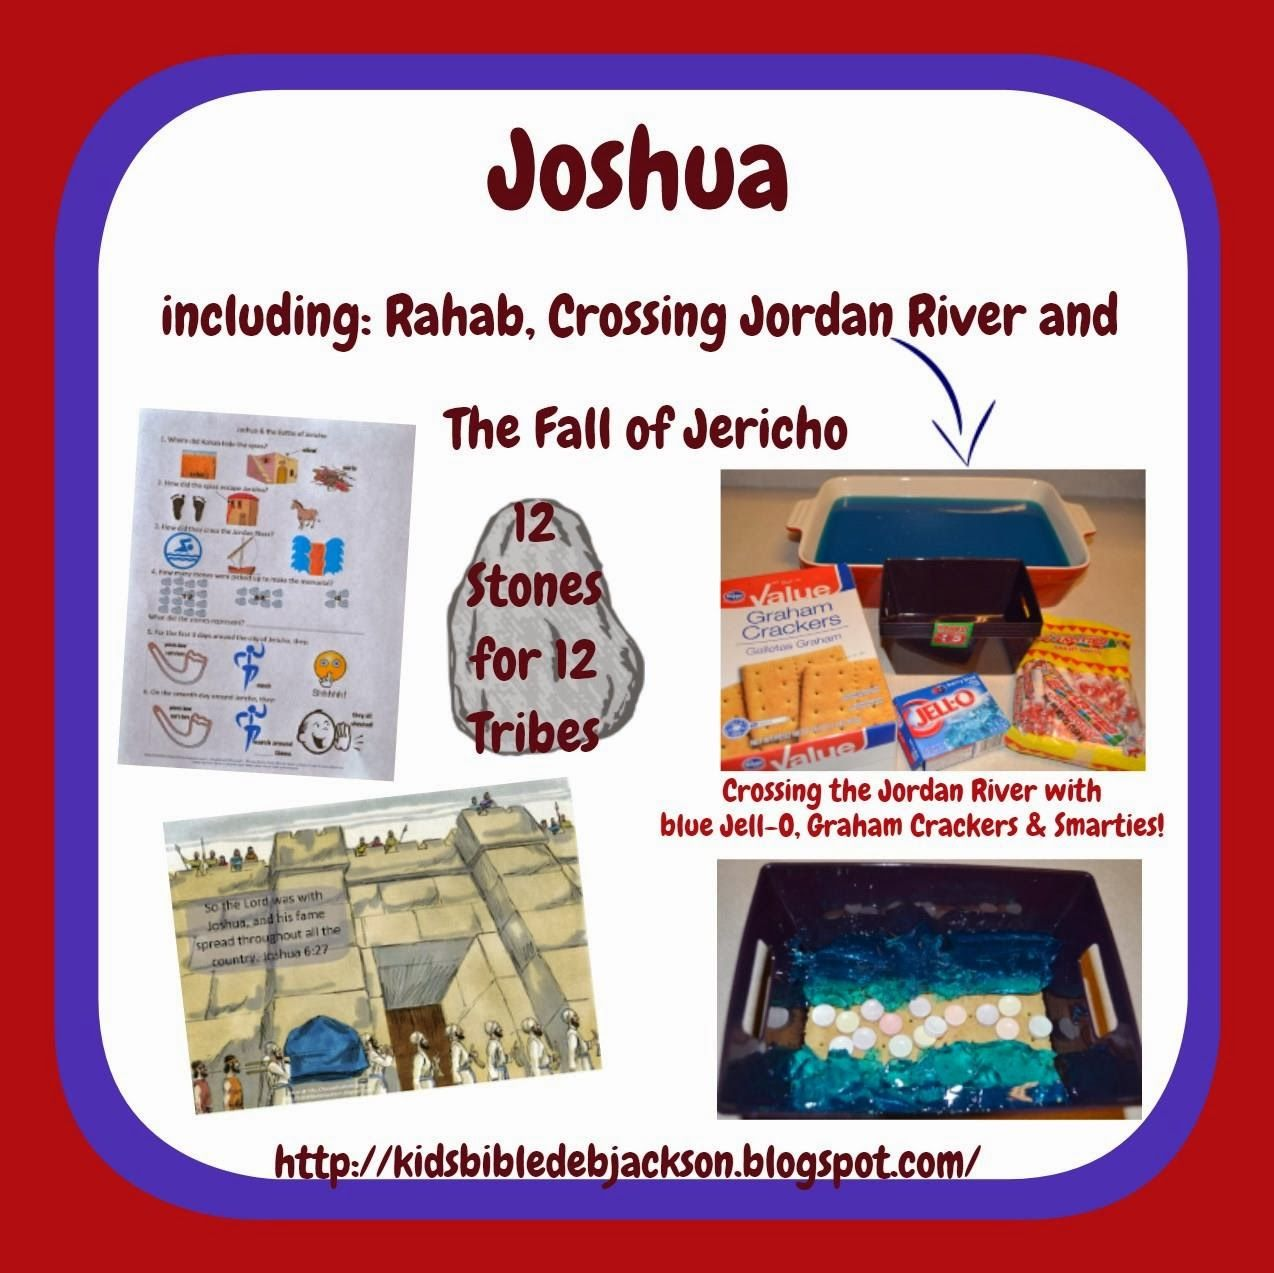 an analysis f moses and joshuas crossings Joshua is credited with being present at moses's death and literature records that moses's garments were with joshua at the time of his departure in sahih bukhari and sahih muslim , joshua is mentioned as yusha' bin nun and is the attendant to moses during his meeting with khidr.